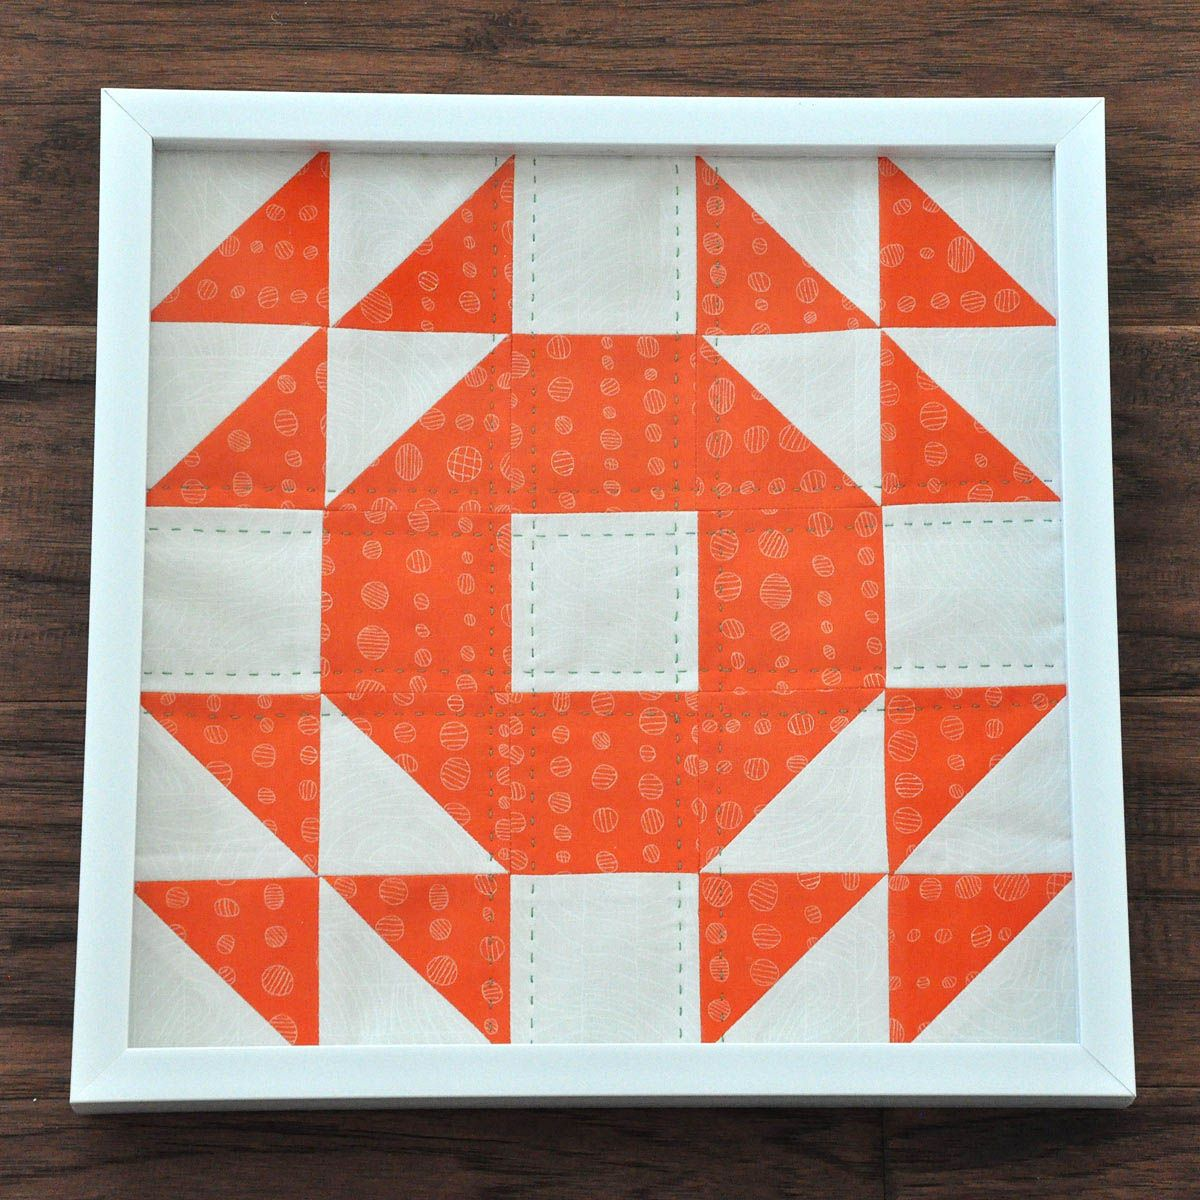 old style wedding ring quilt Google Search MM Wedding Quilt